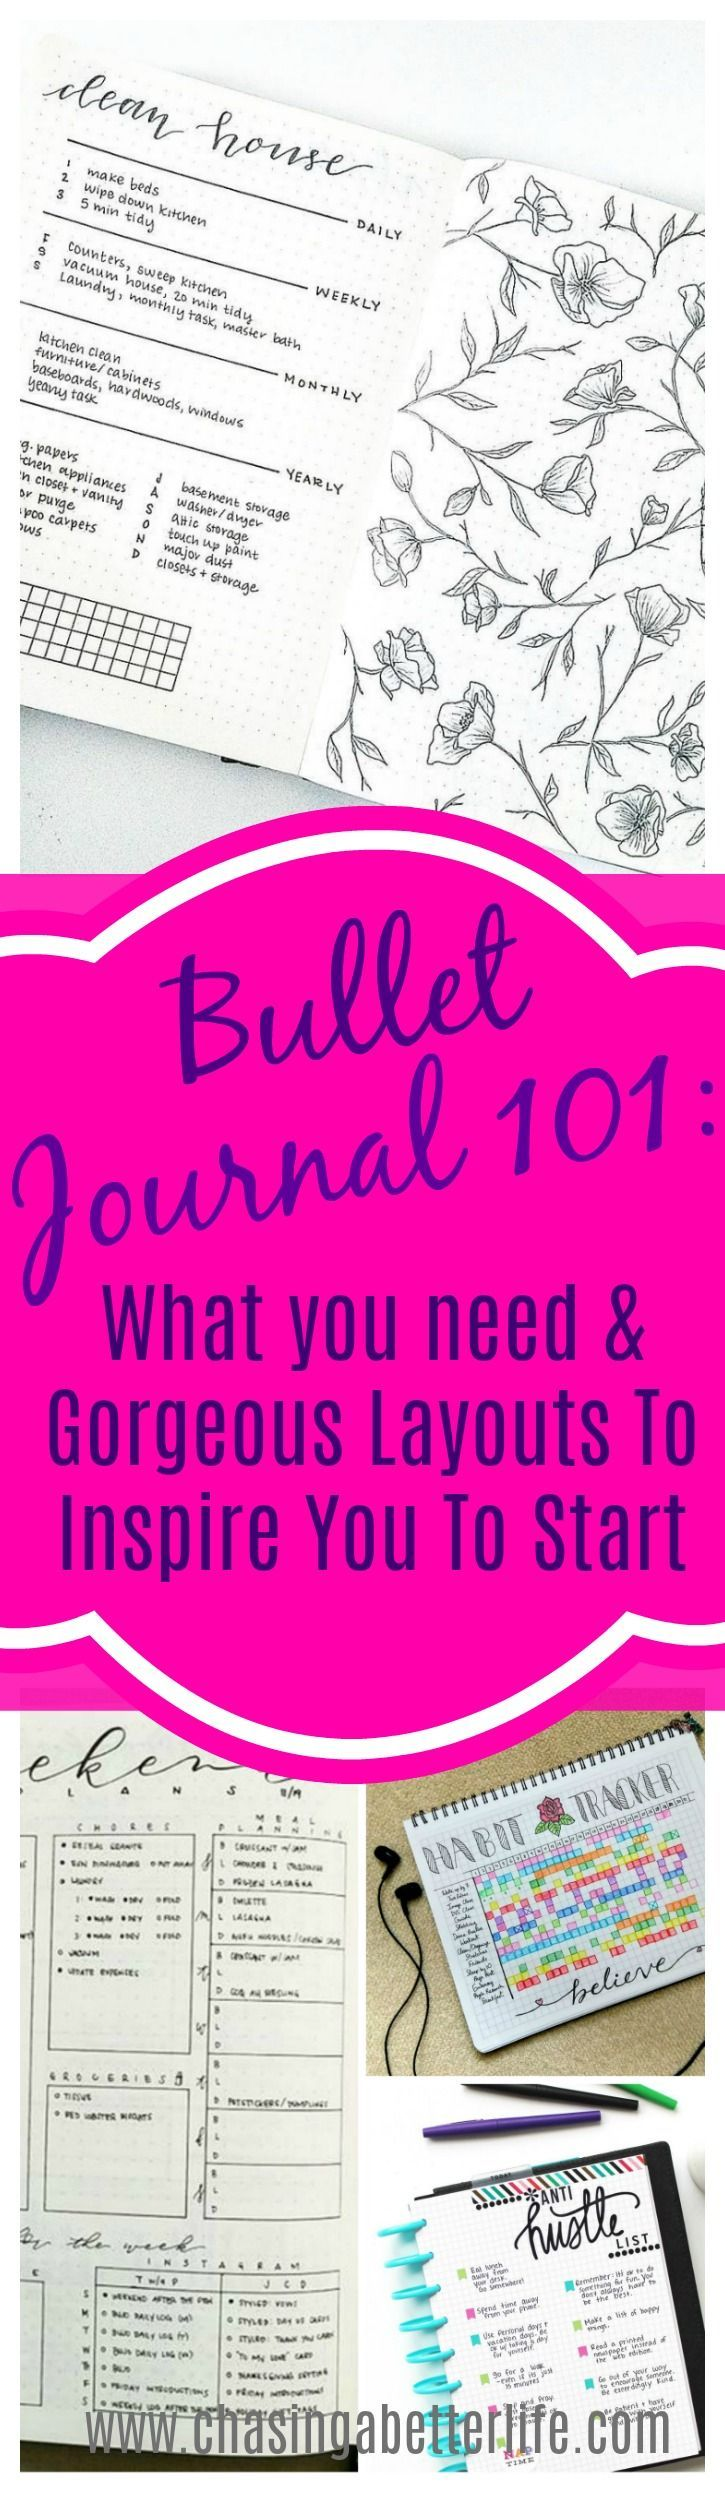 Bullet Journal 101: What you need & Gorgeous Layouts To Inspire You To Start